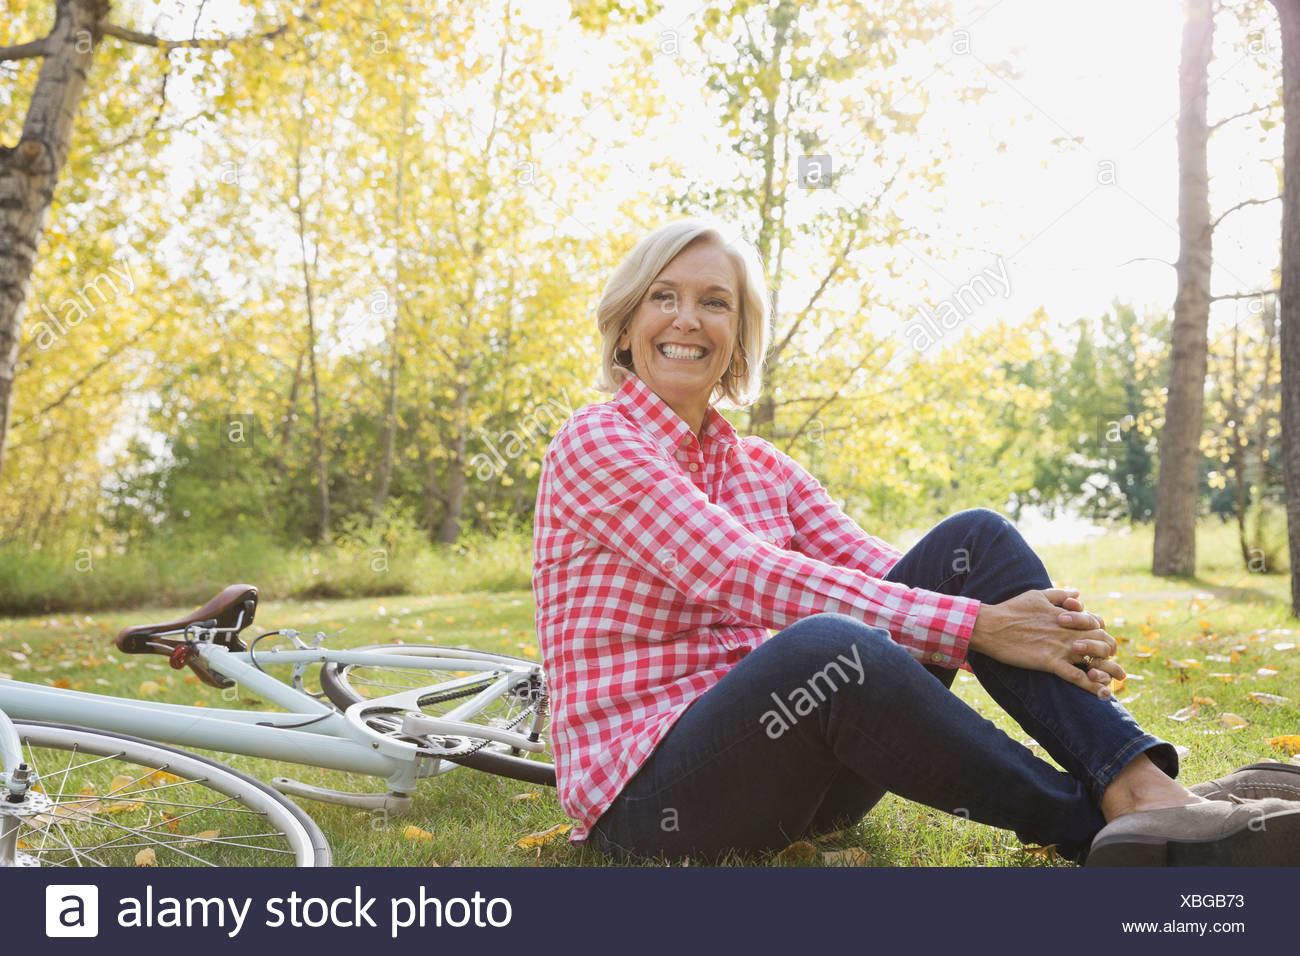 Happy woman with bicycle sitting in park - Stock Image